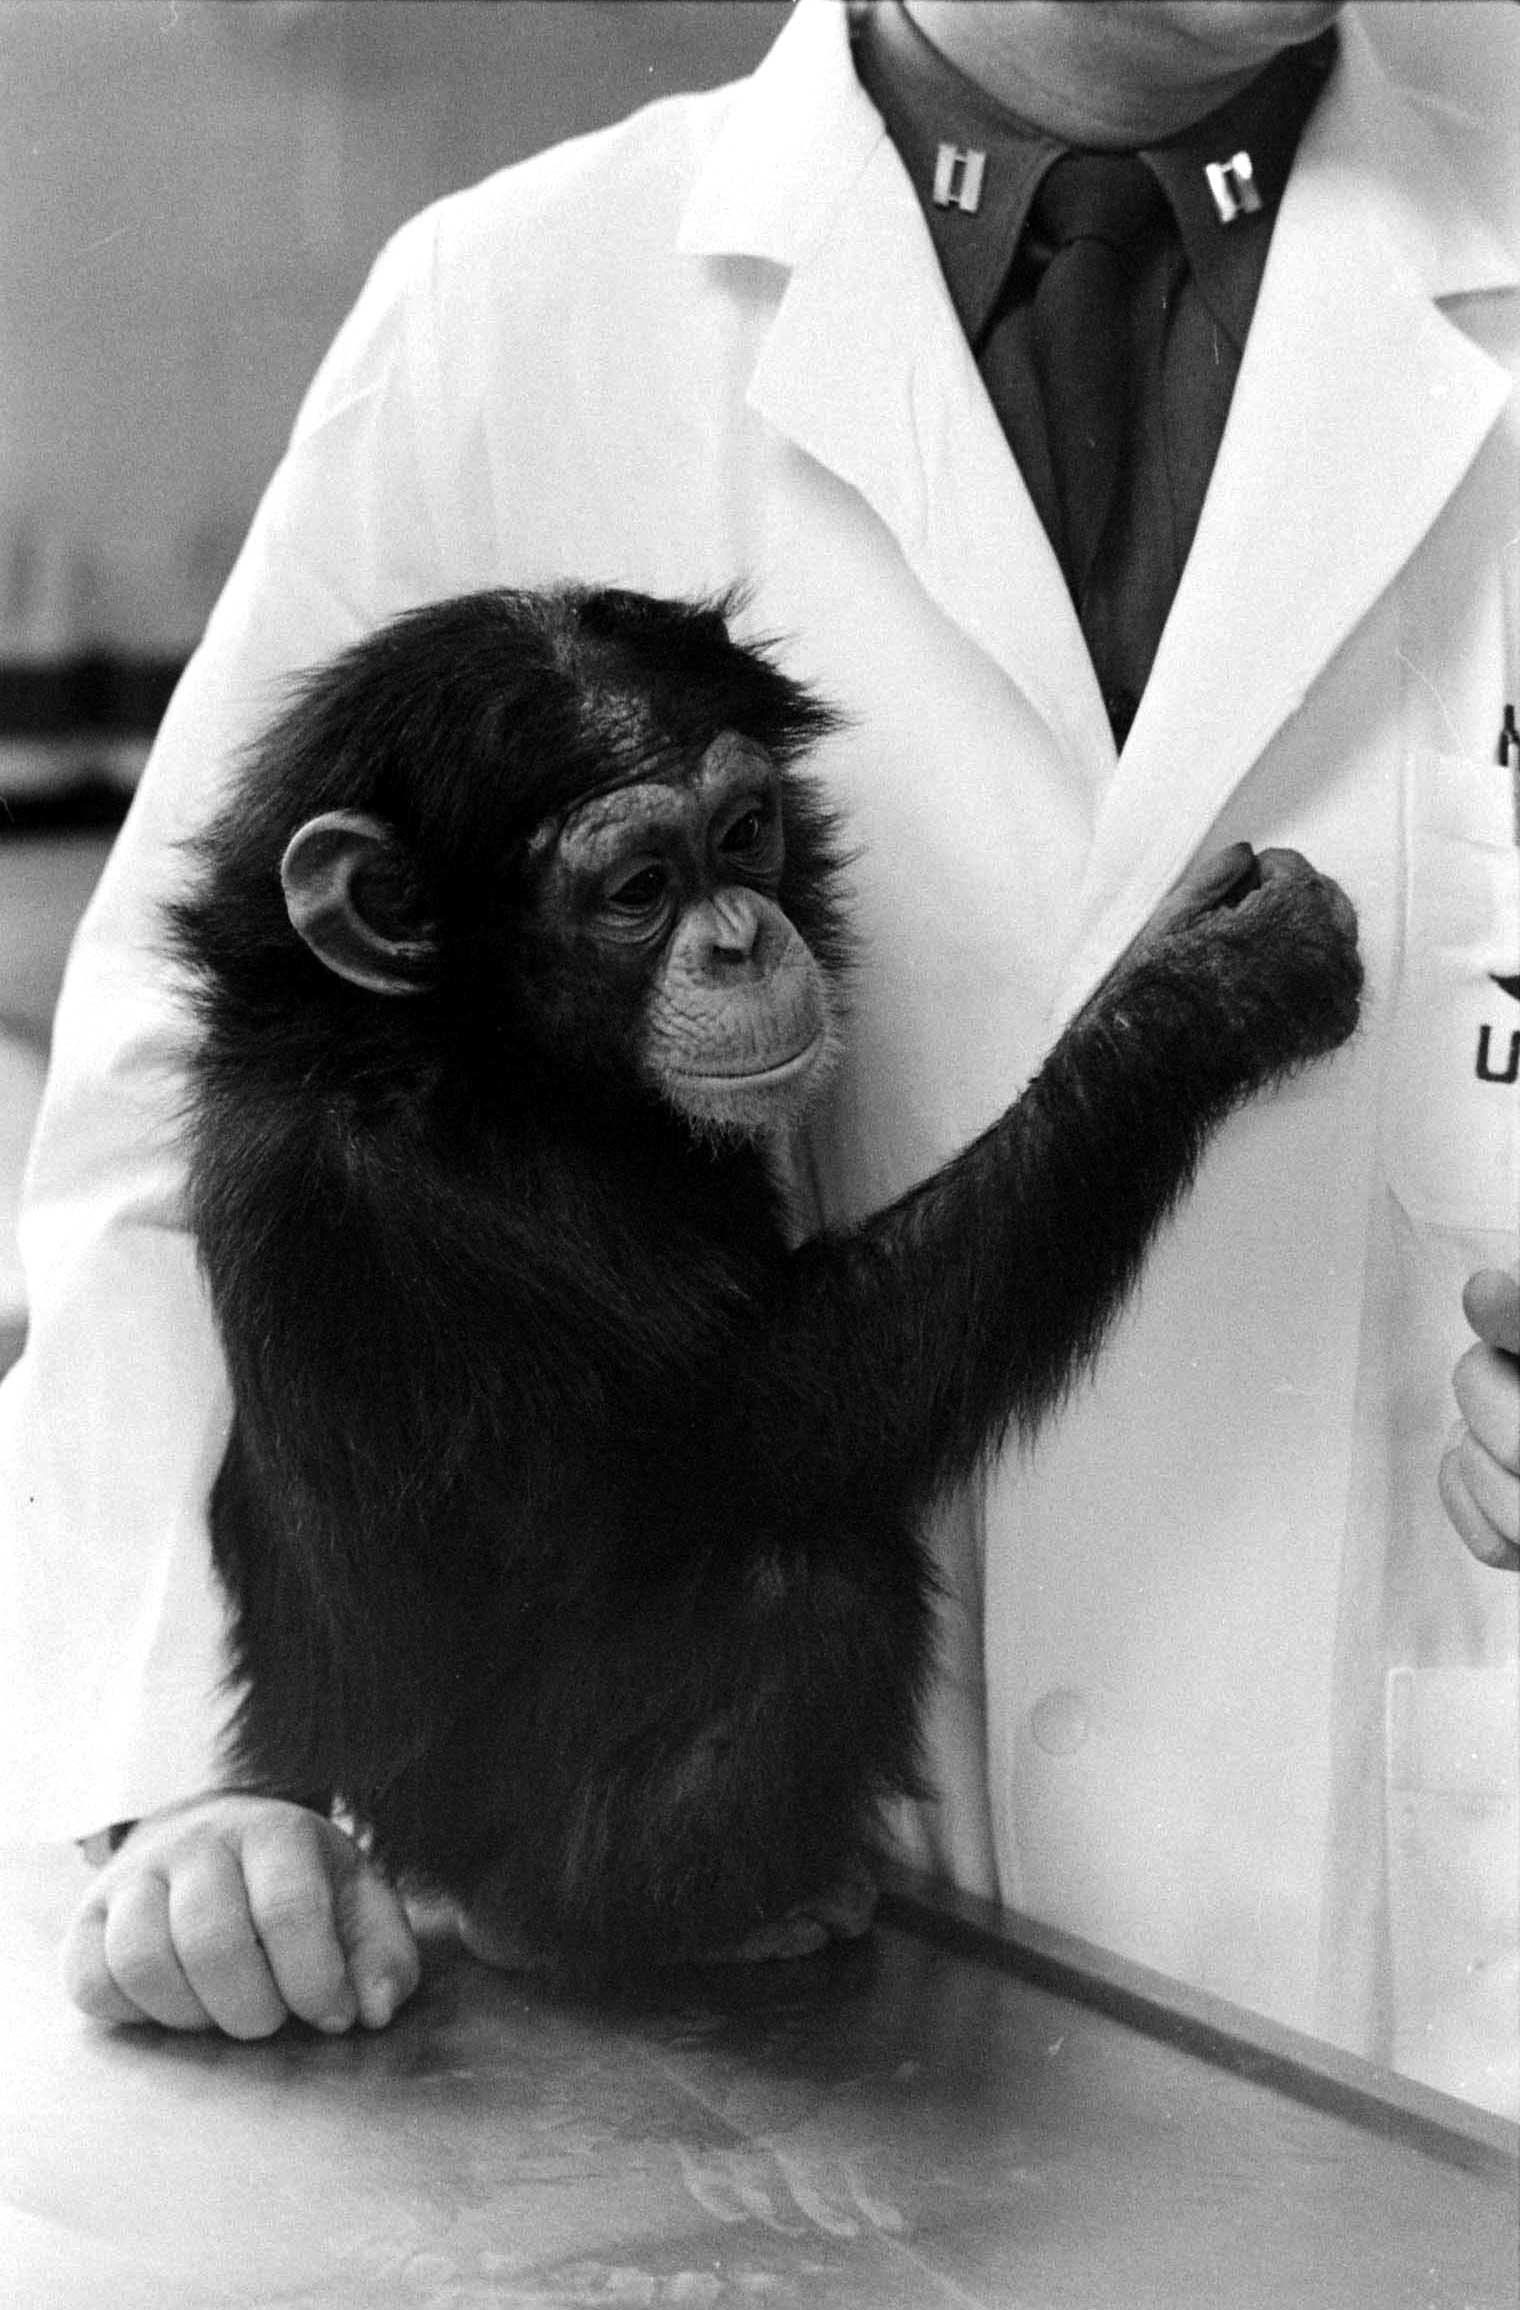 <b>Not published in LIFE.</b> Astrochimp, 1960.